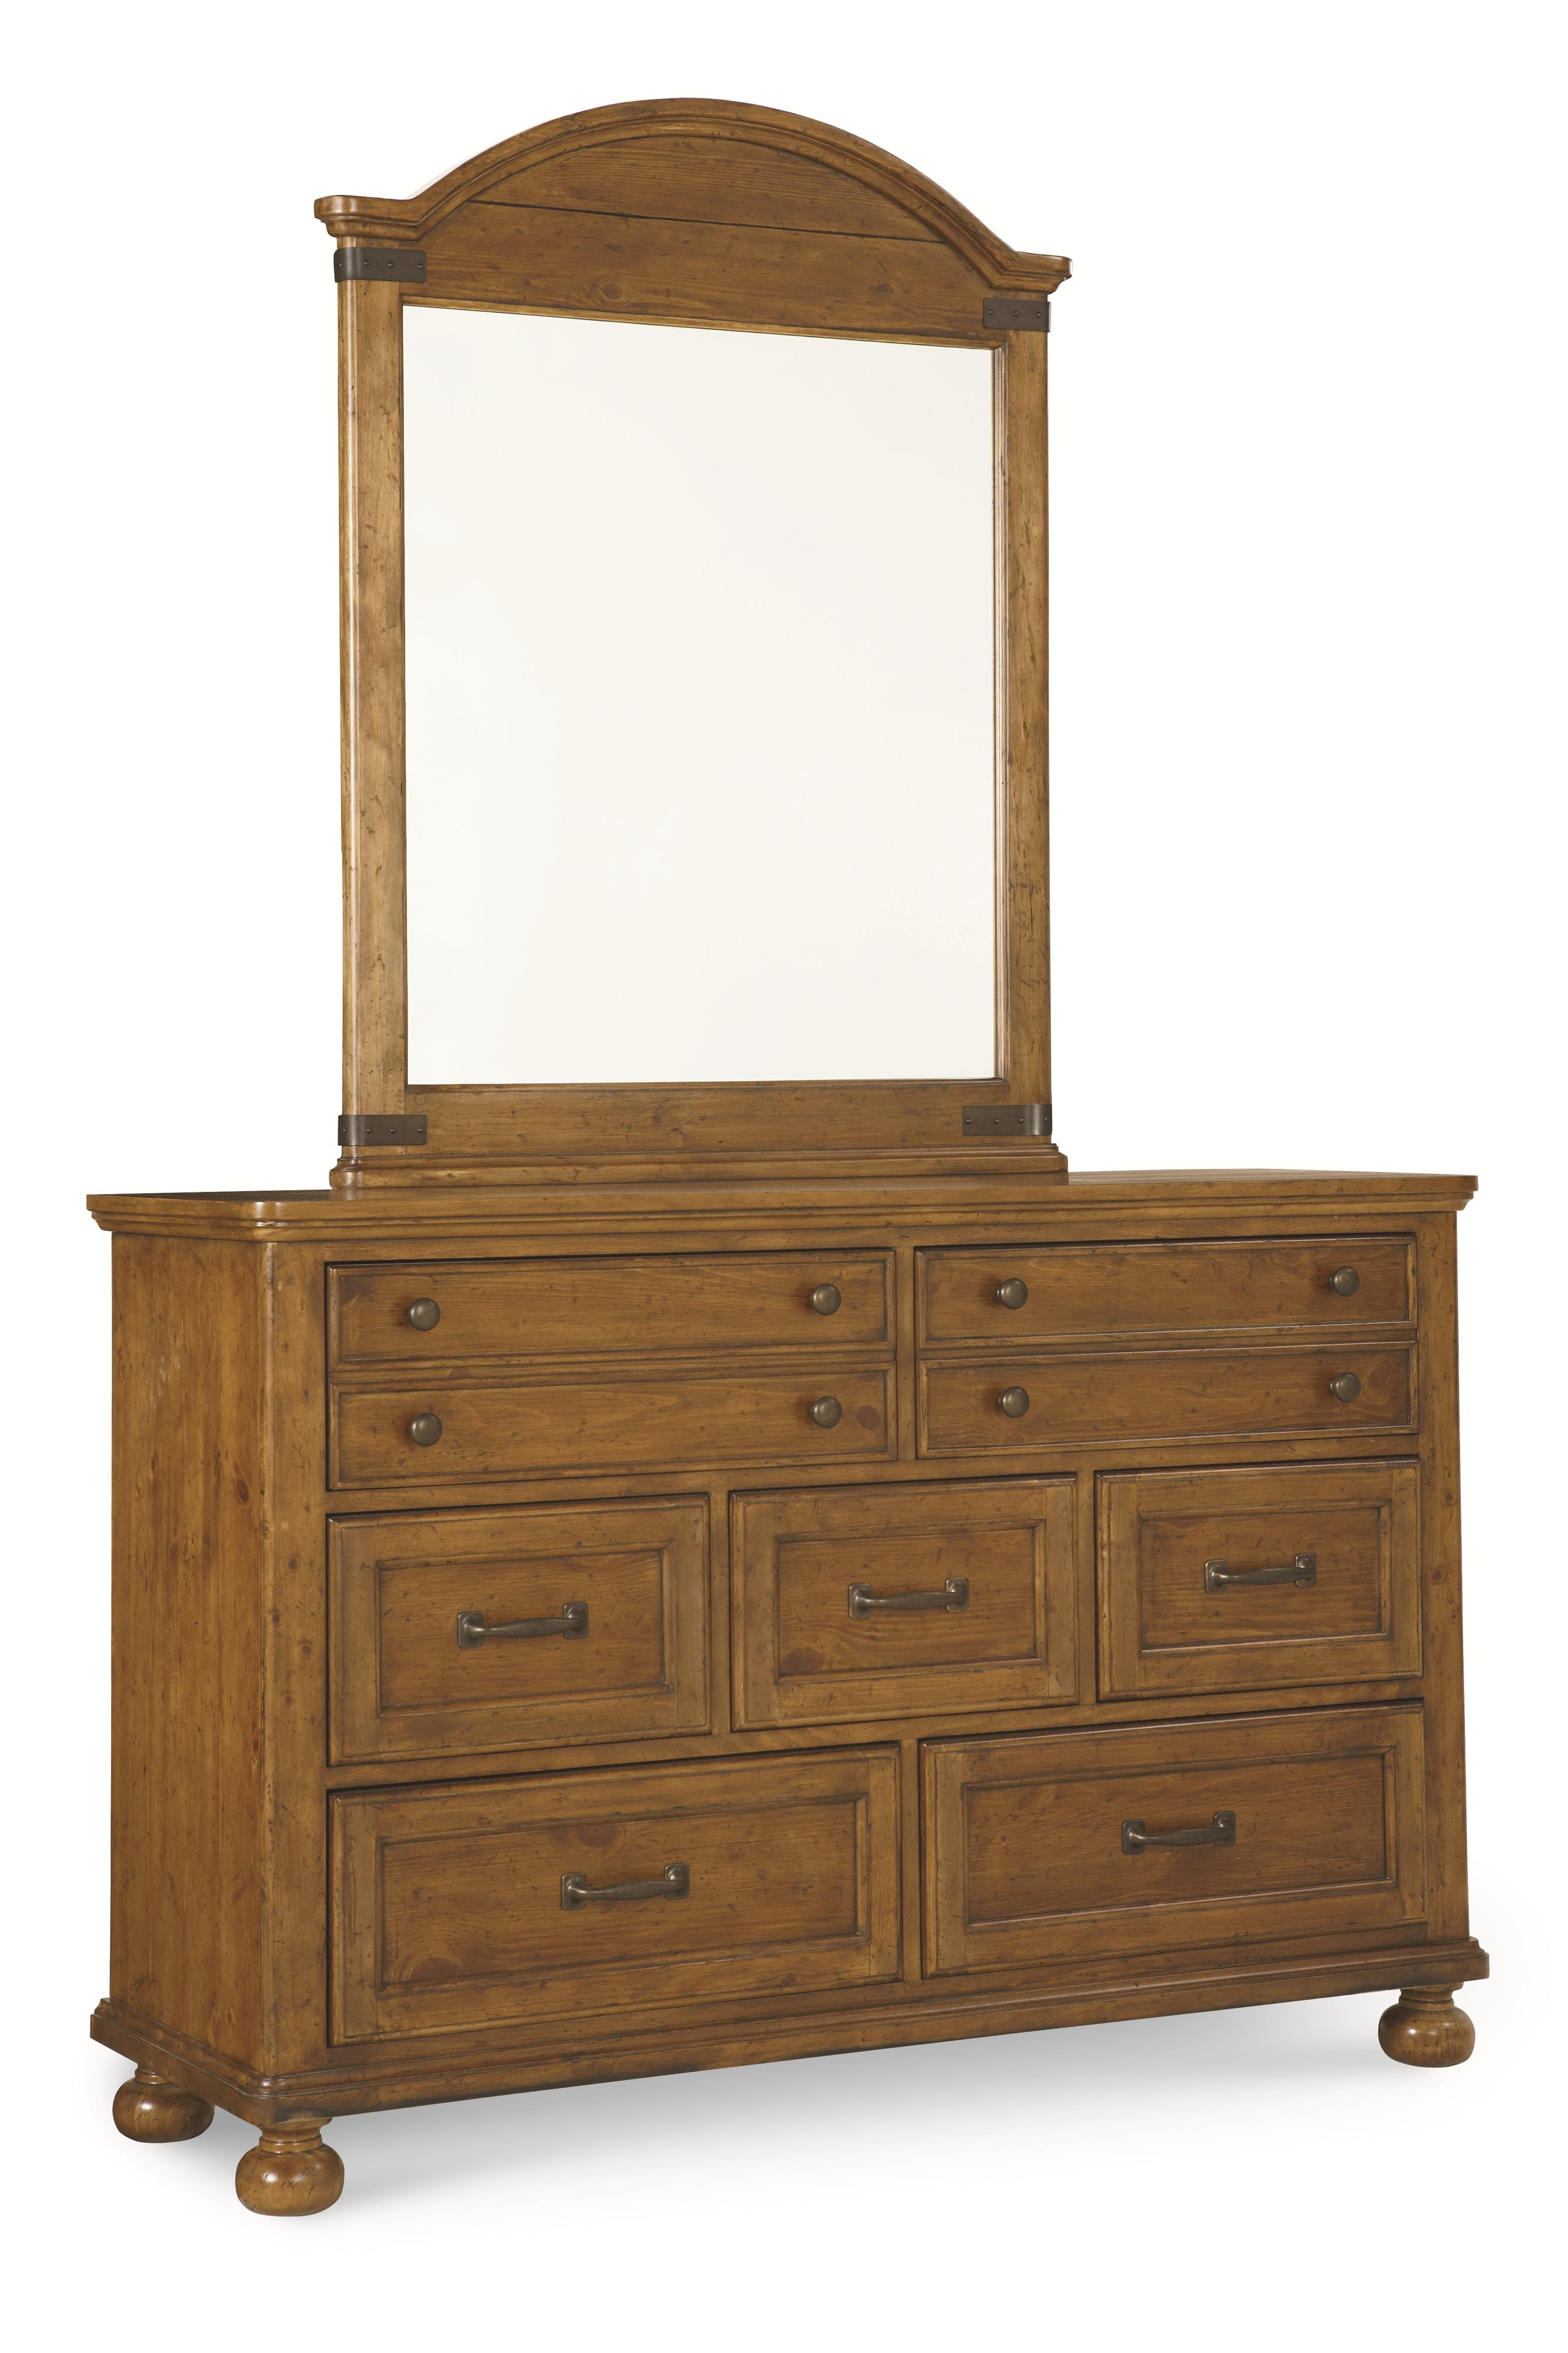 Legacy Classic Kids Bryce Canyon 7 Drawer Dresser And Arched Mirror Set Belfort Furniture